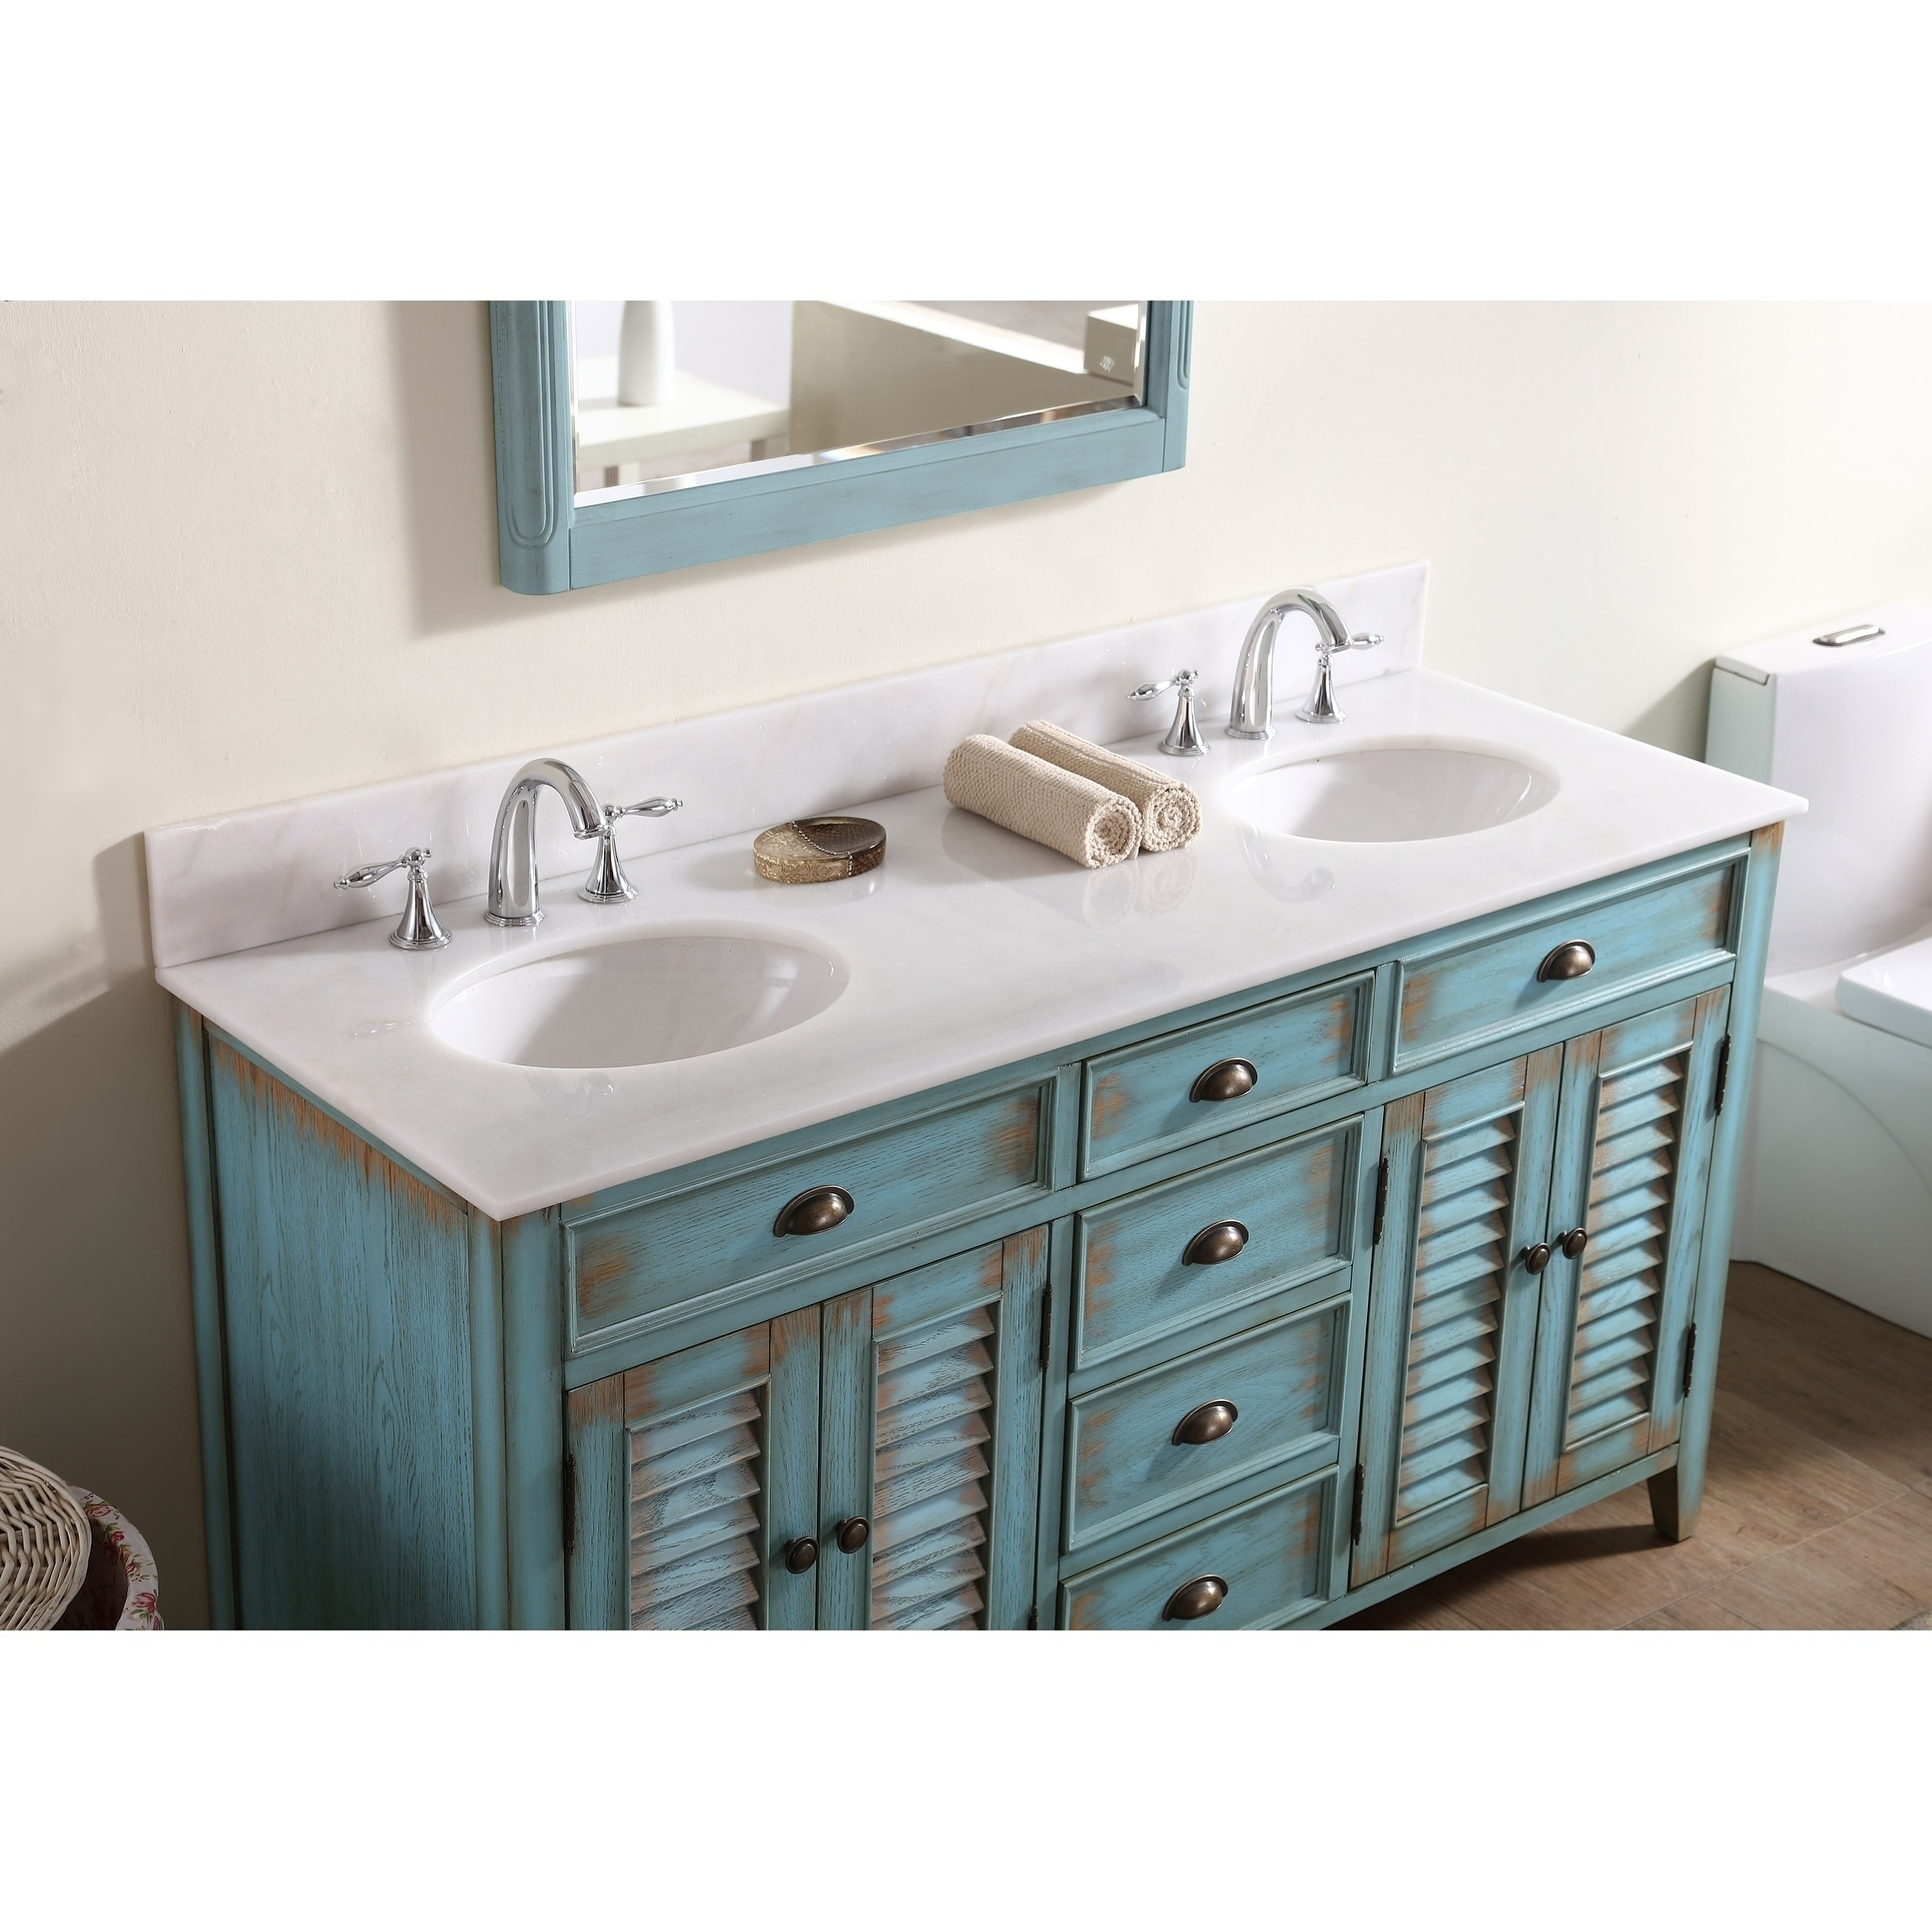 Shop Modetti Palm Beach Inch Double Sink Bathroom Vanity With - Bathroom vanities palm beach